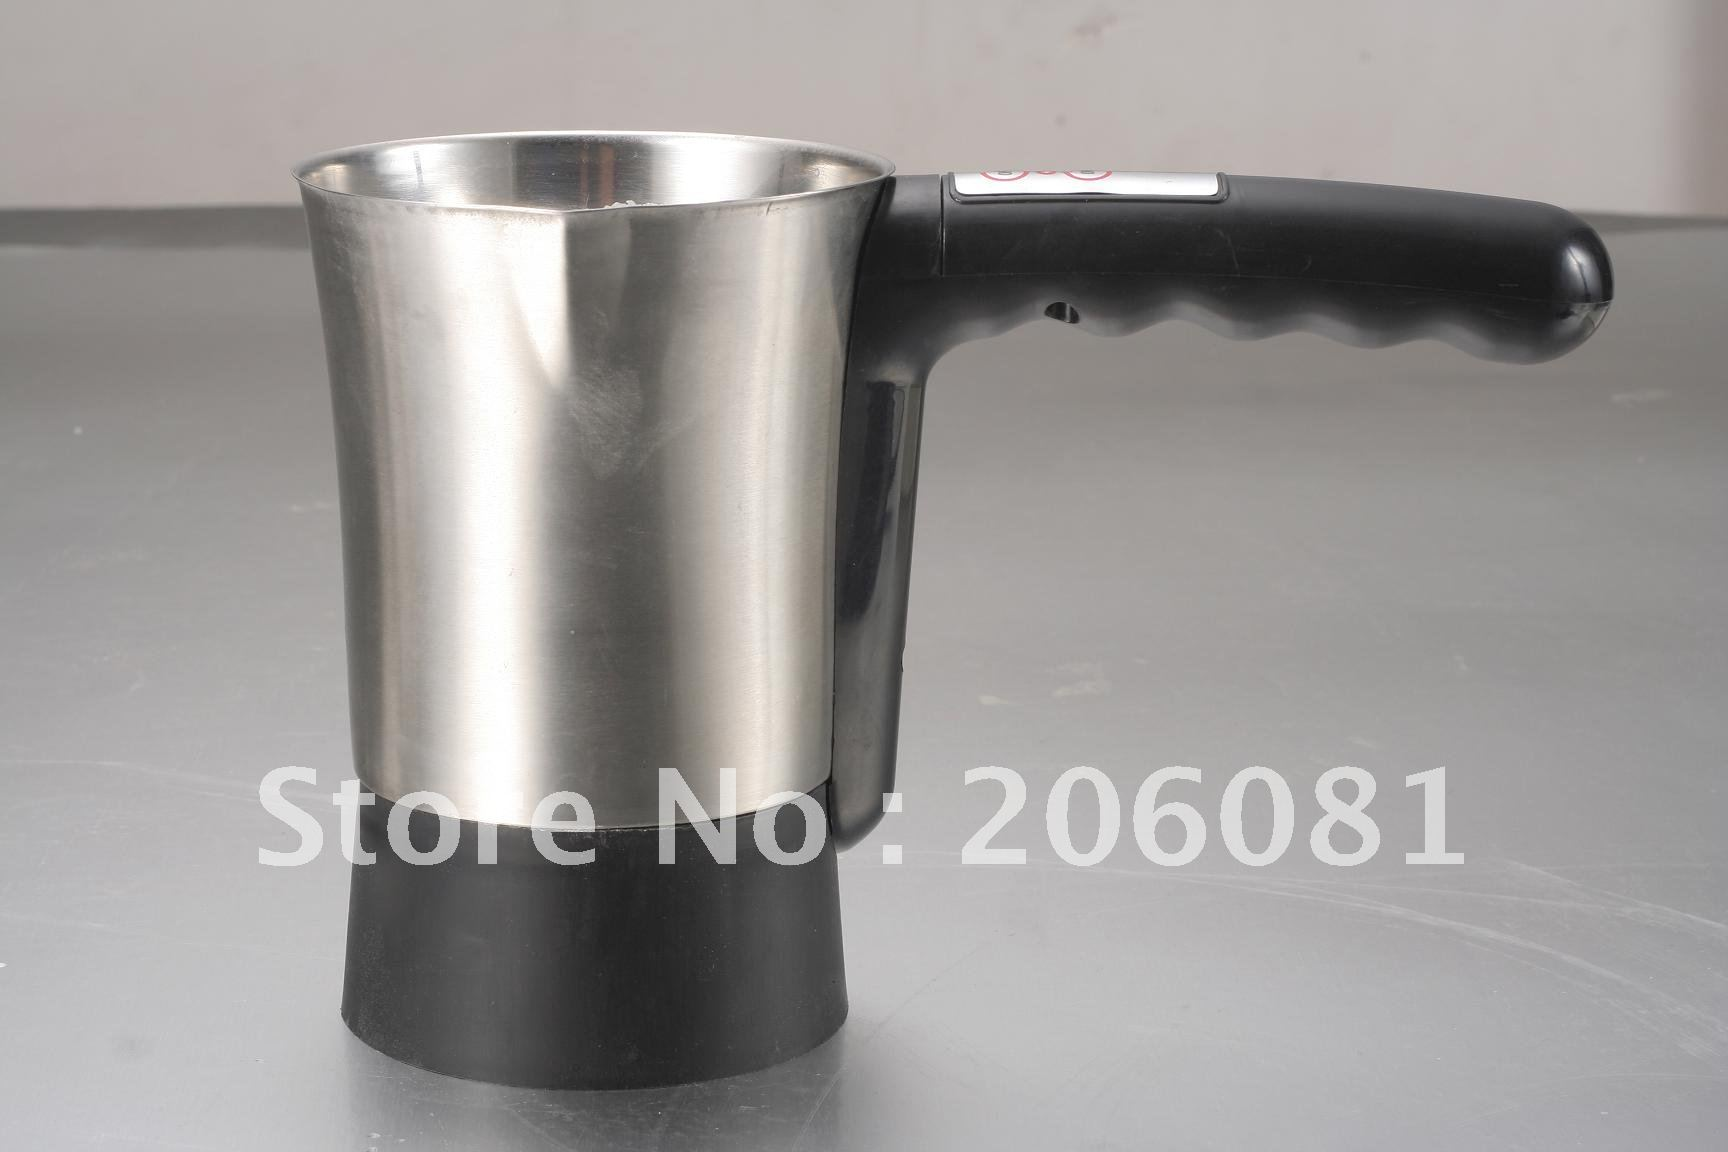 Electric Milk frother,capuccino coffee maker,autoamtic milk frother maker/coffee maker foaming maker machine(Factory store) electric milk frother capuccino coffee maker autoamtic milk frother maker coffee maker foaming maker machine factory store